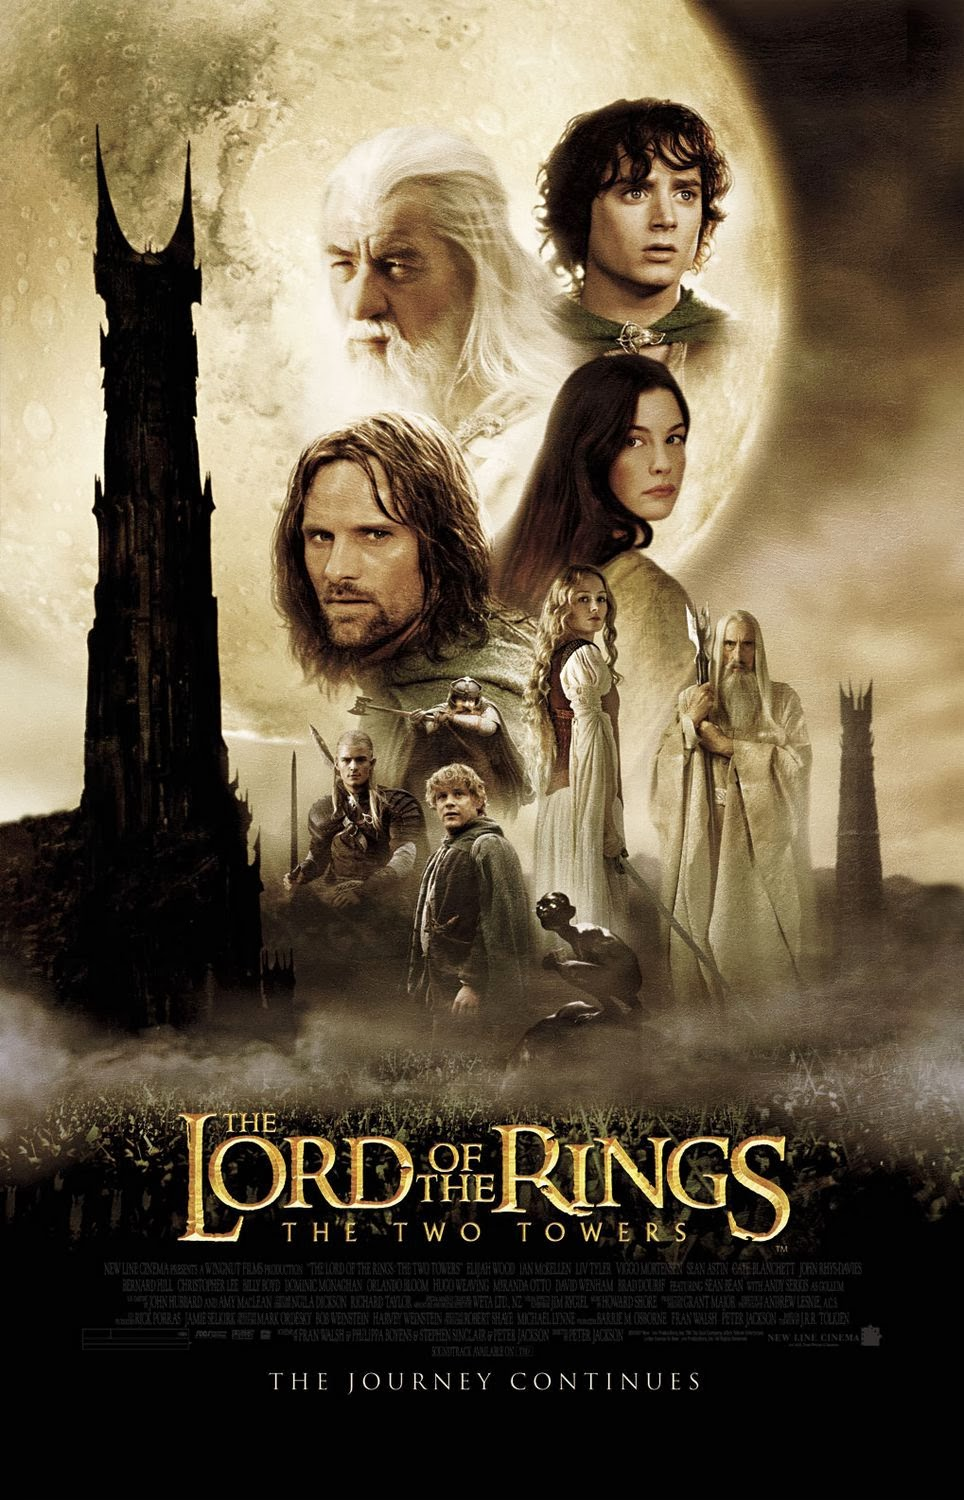 Foley Art and Lord of the Rings | A Moment in the Mind of Sam